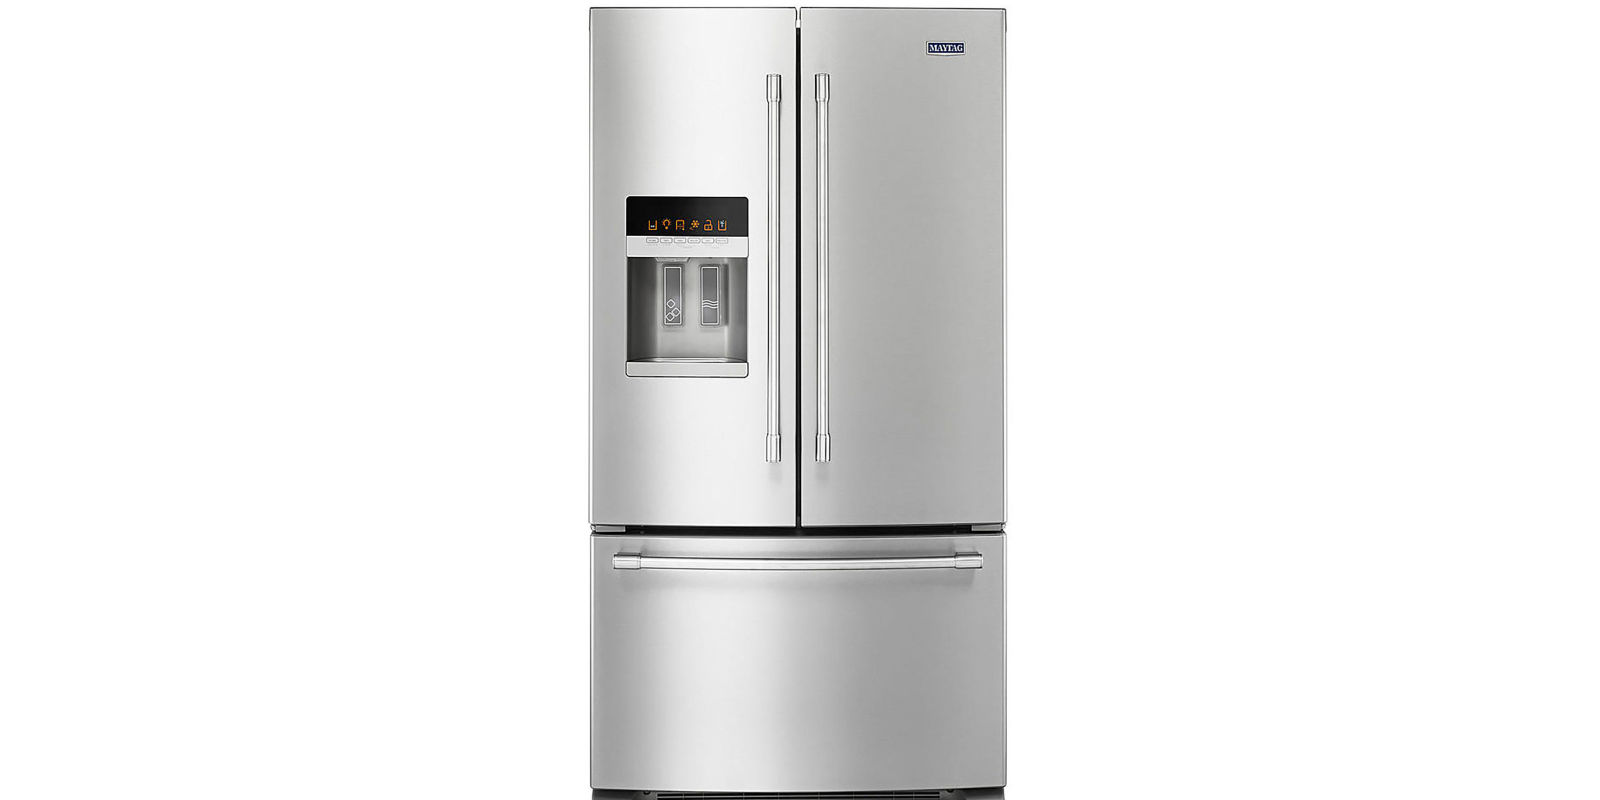 French Door kenmore elite french door refrigerator reviews photos : Maytag 36-Inch Wide French Door Refrigerator 25 Cu. Ft ...